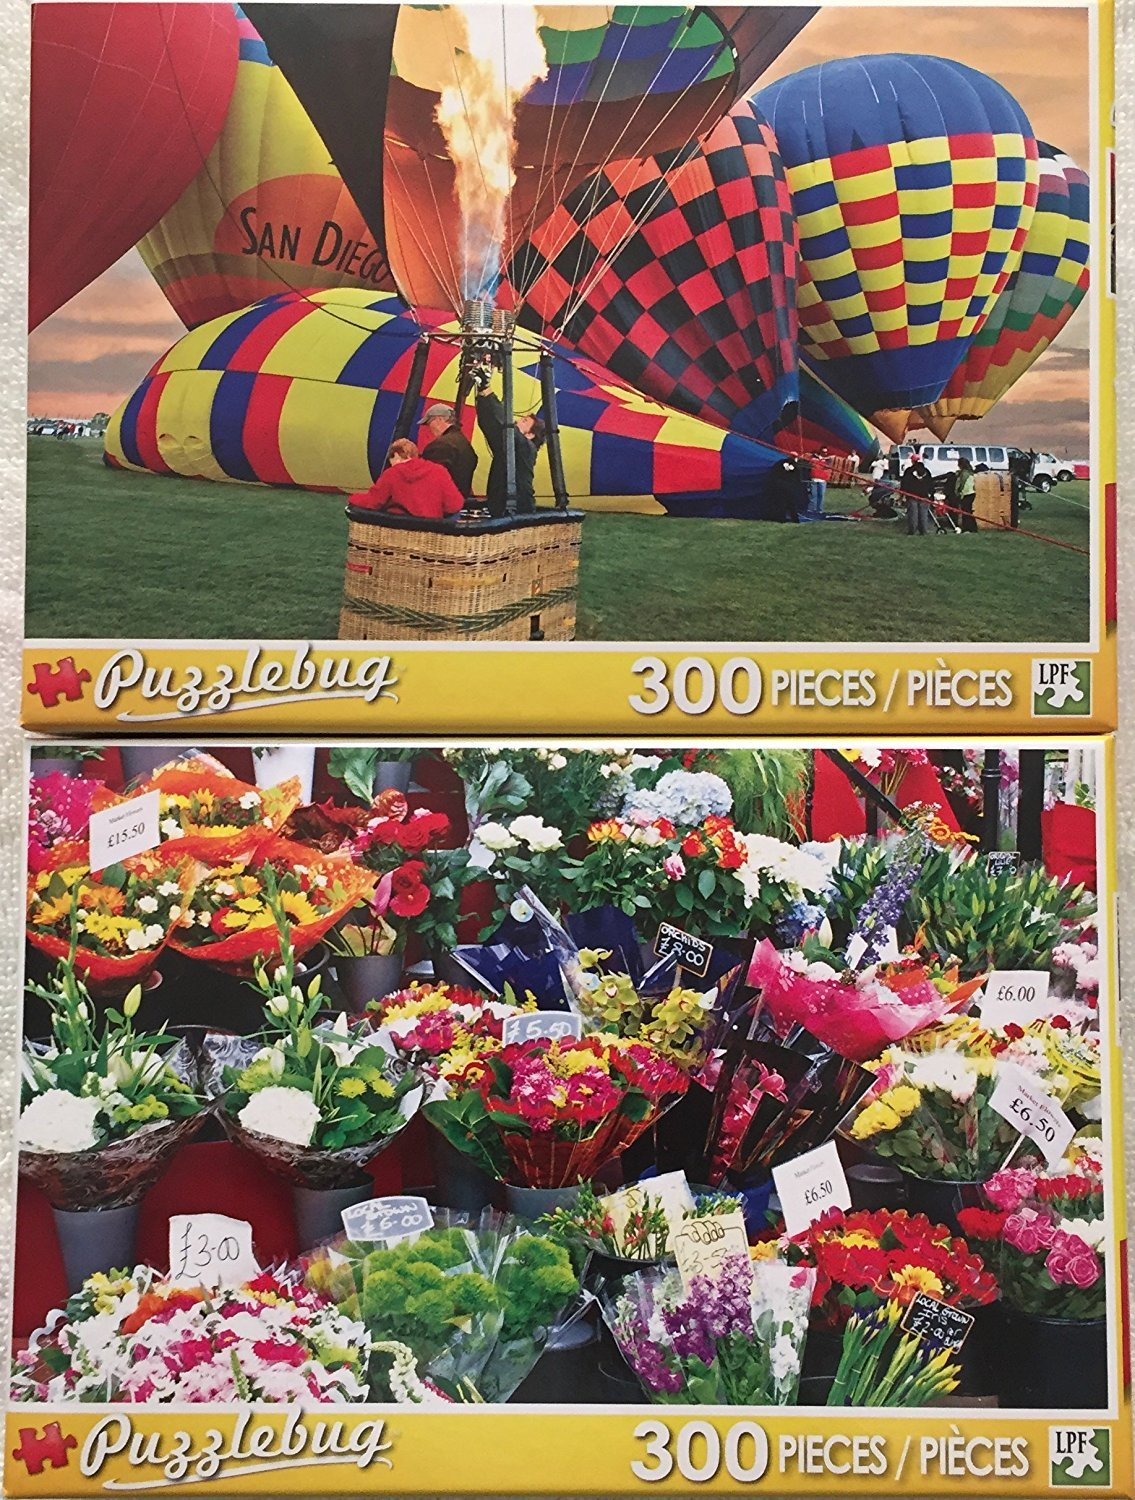 2 Puzzlebug 300 Piece Puzzles: Hot Air Balloon Ride - All Aboard! ~ Colorful Market Flowers